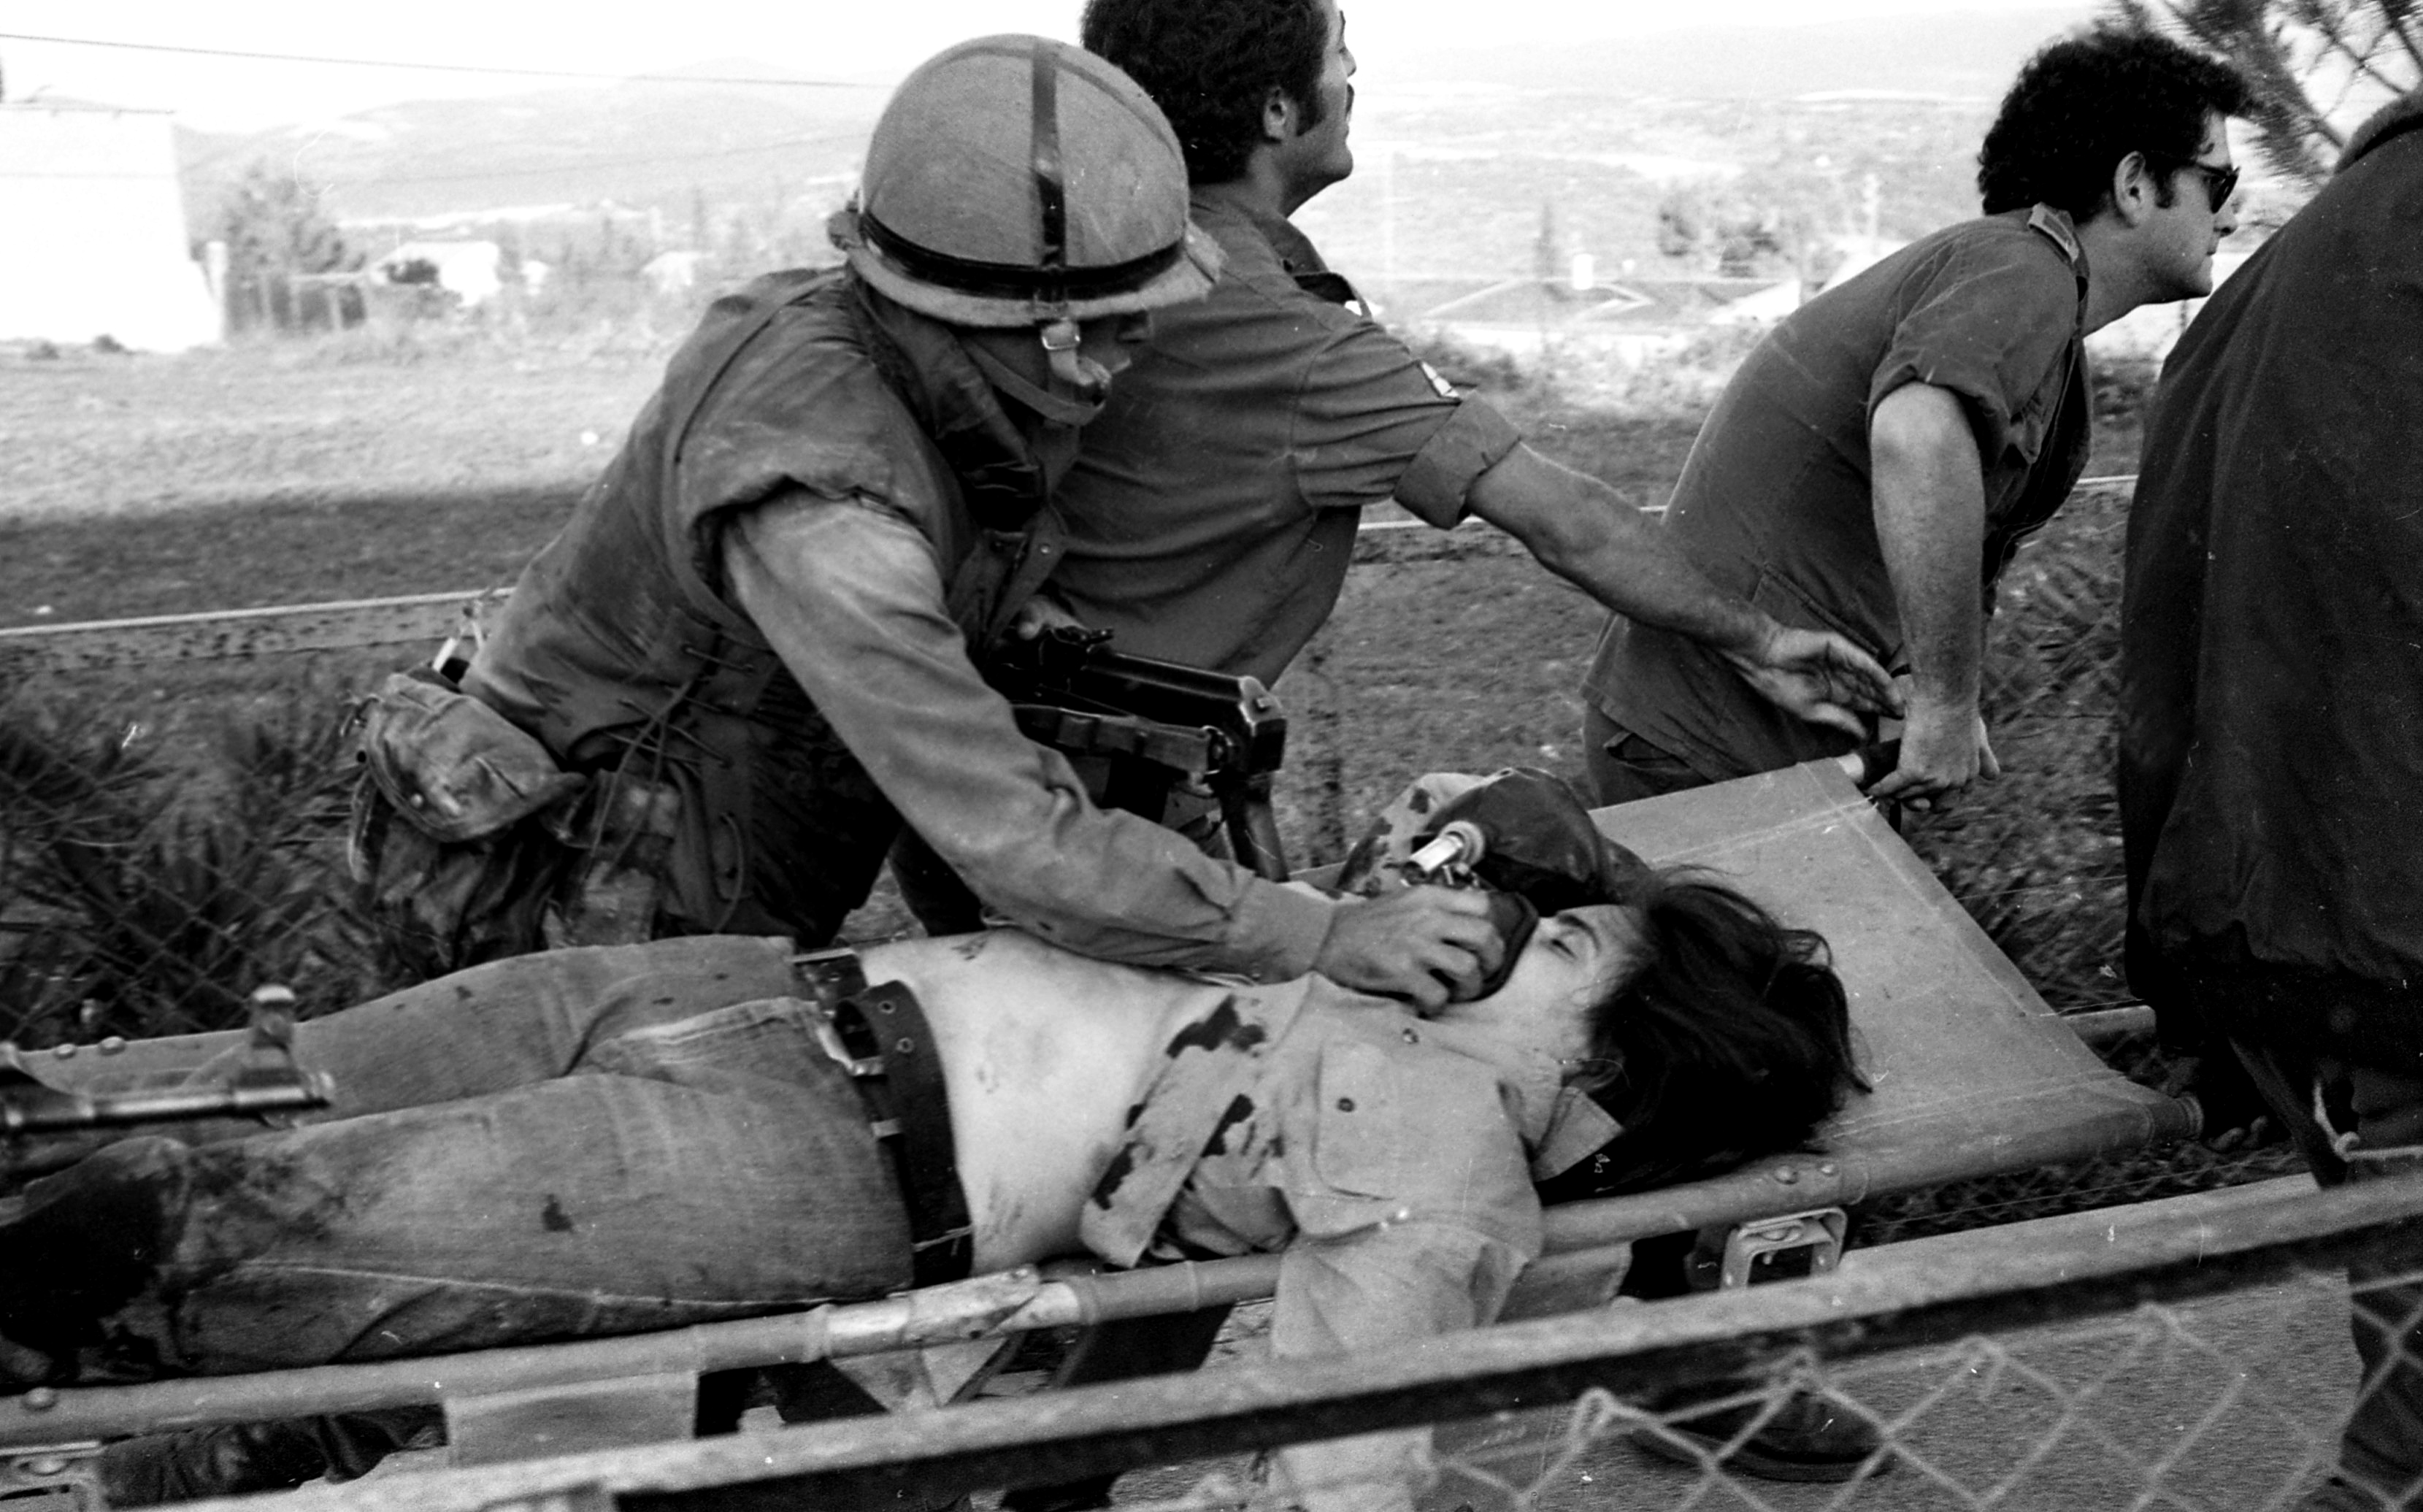 An Arab terrorist group attacked a school at Maalot killing several children and wounded thenth of them. IDF attacked the group killing the terrorists. Photo shows: IDF carrying wounded children 1974/05/15 Copyright © IPPA 09239-010-42 Photo by IPPA Staff